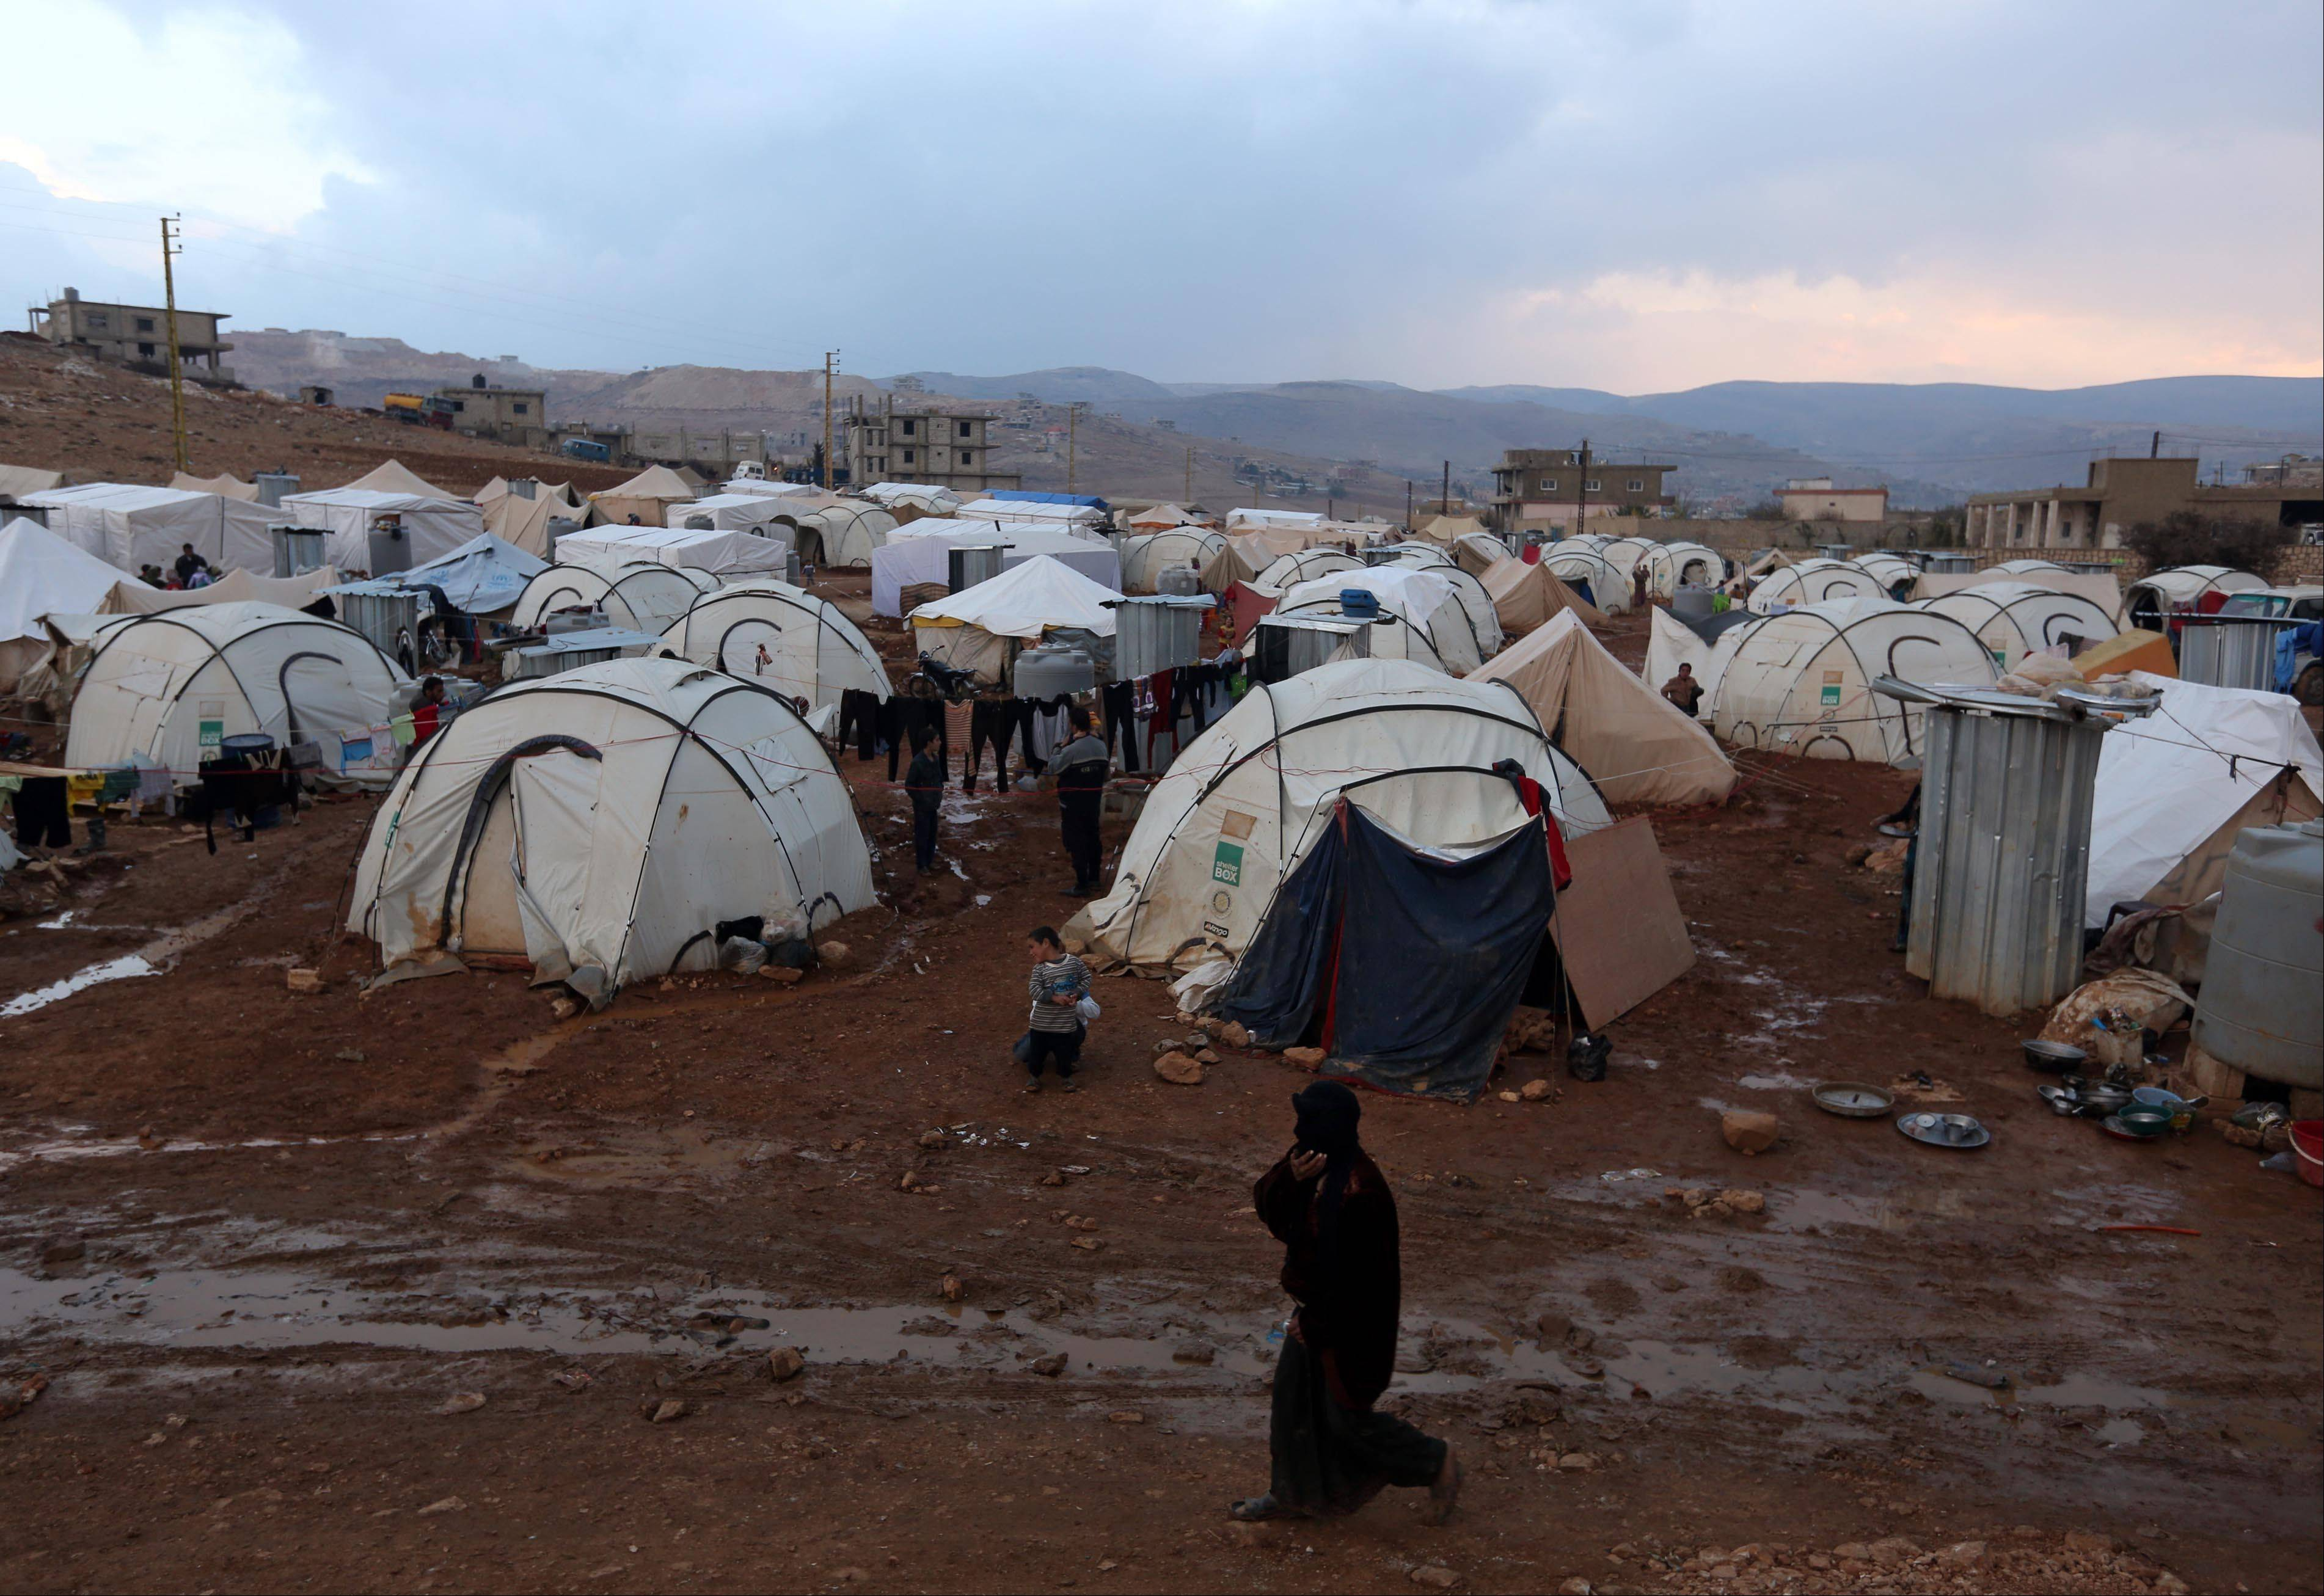 A Syrian refugee woman walks Monday near the tents of a refugee camp in the eastern Lebanese border town of Arsal. Thousands of Syrians have fled to Lebanon over the past days as government forces attack the western town of Qarah near the border with Lebanon.